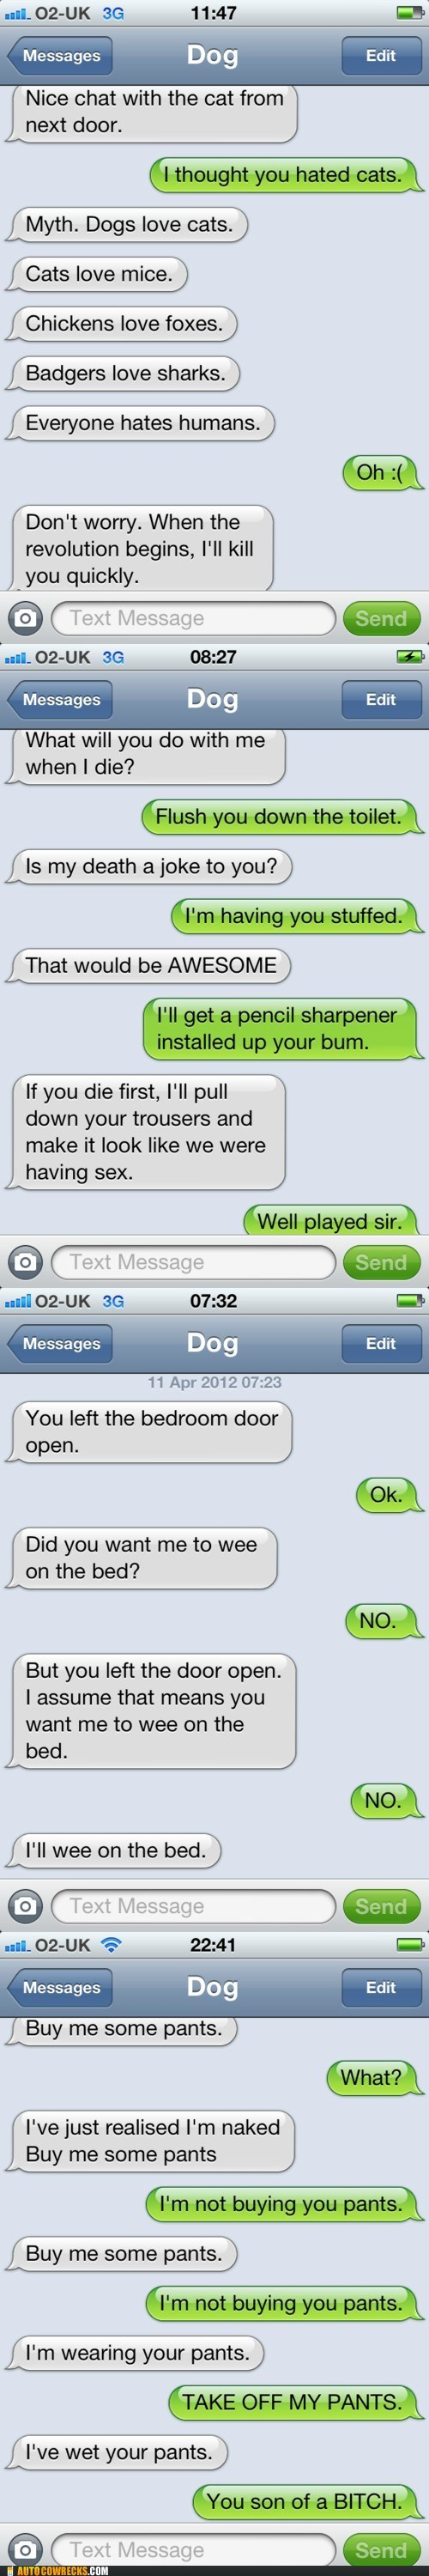 AutocoWrecks iphone part 2 texts from dog tumblr - 6100552192